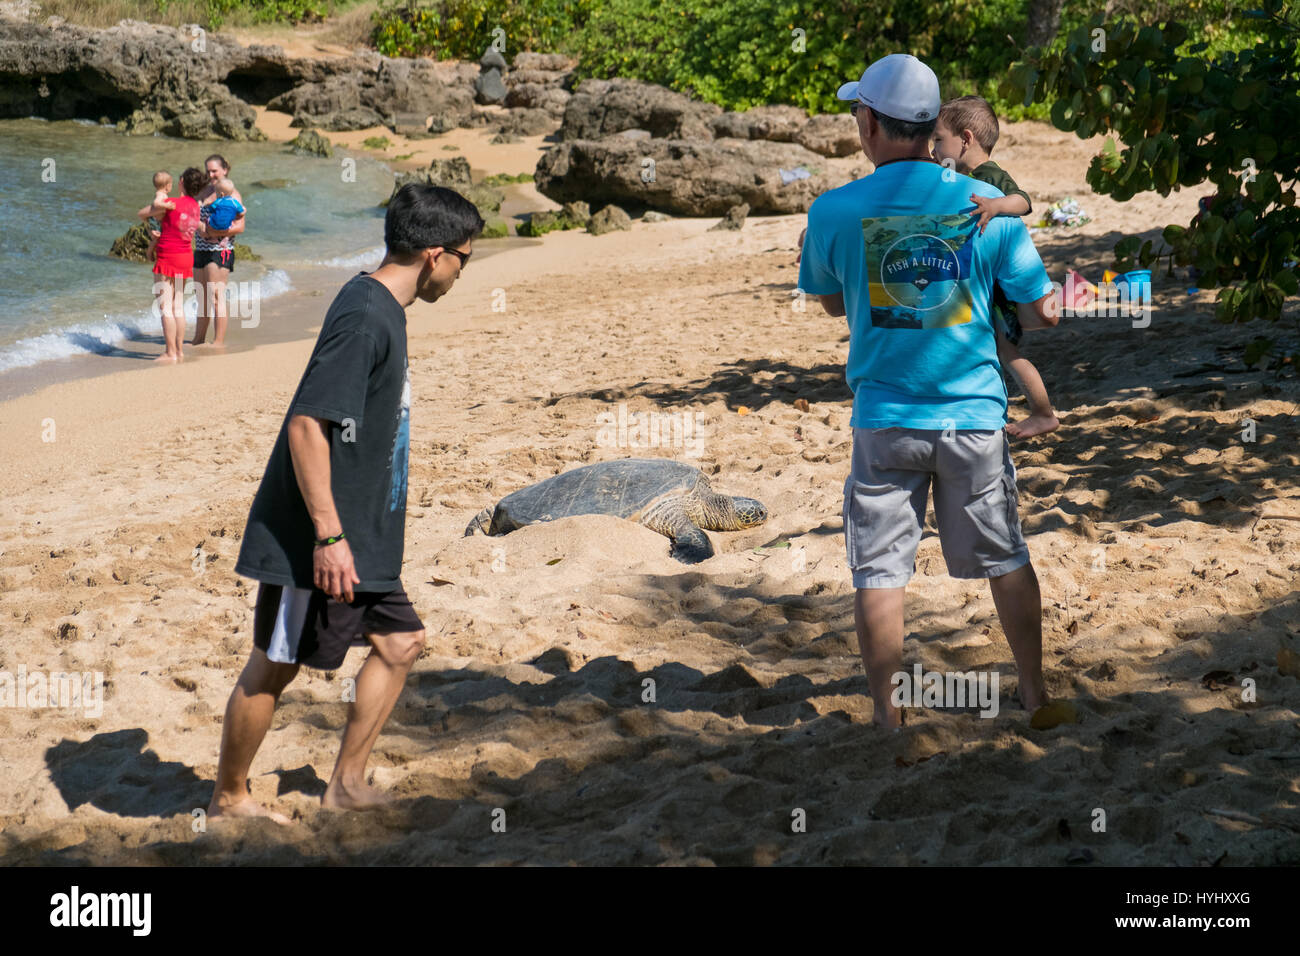 HALEIWA, OAHU, HAWAII - FEBRUARY 15, 2017: Tourists fill the beach and take pictures and selfies with cameraphones - Stock Image